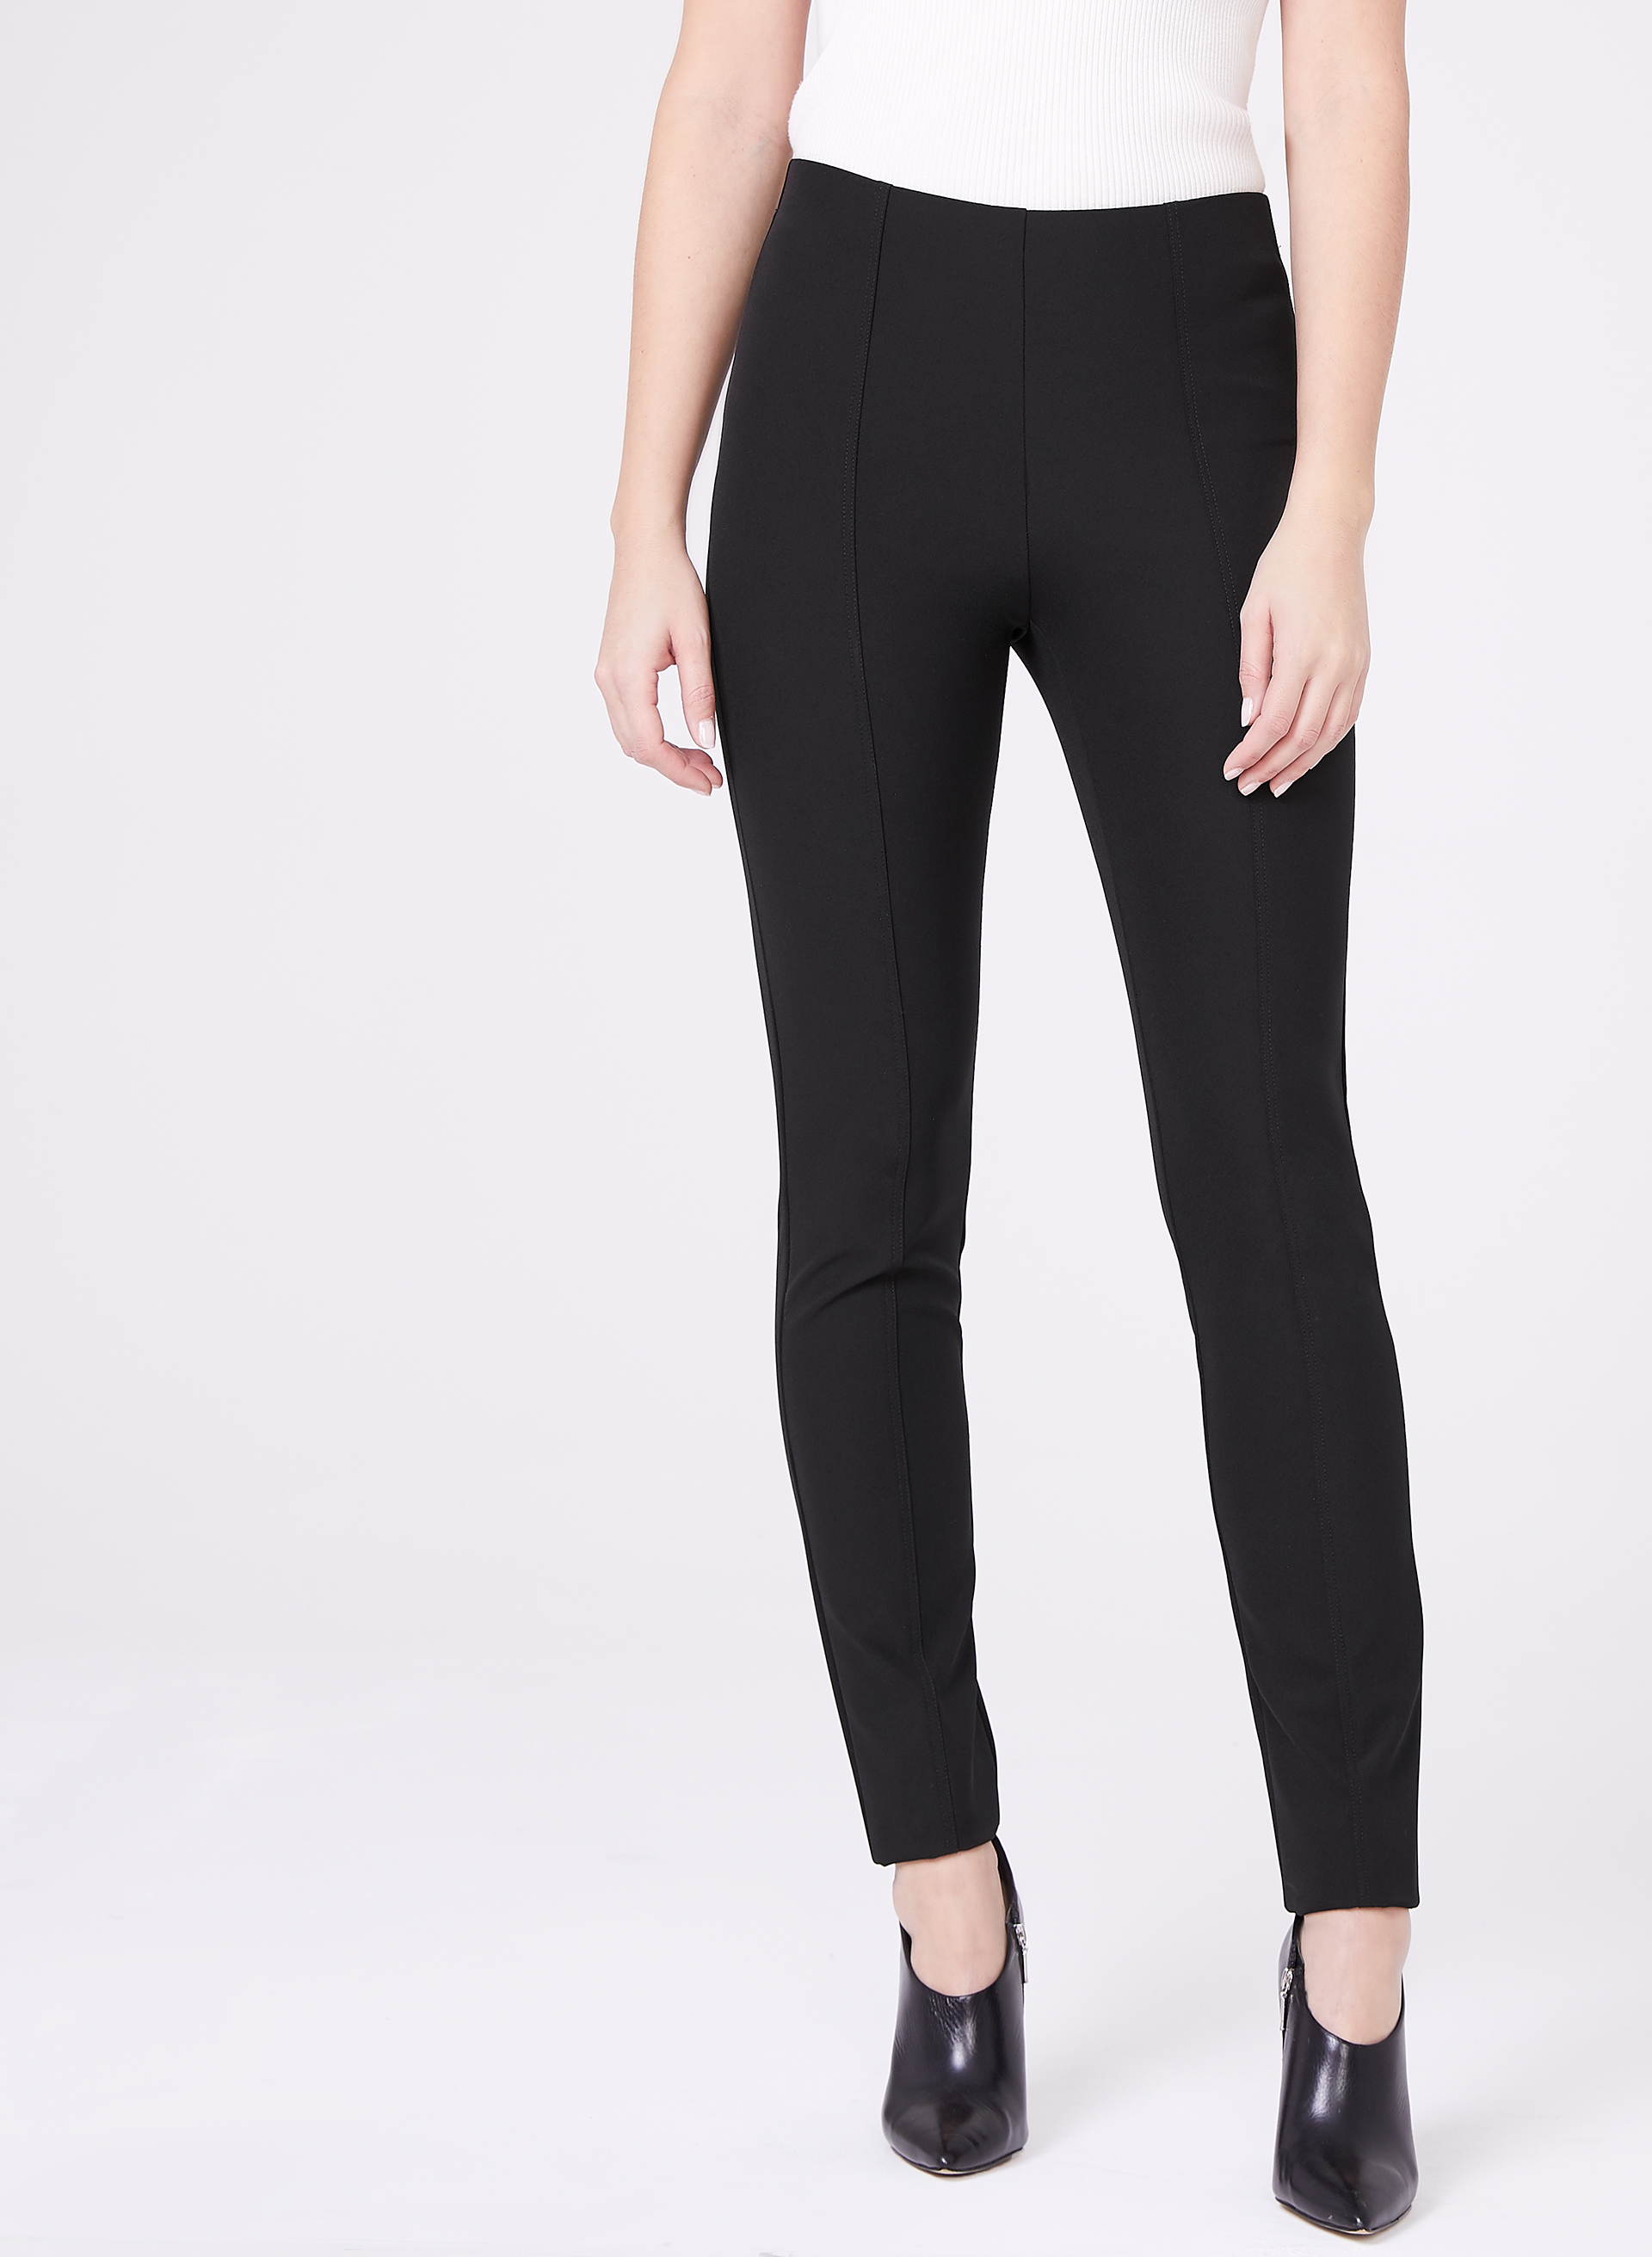 Louben Scuba Slim Leg Pants, Black, hi-res